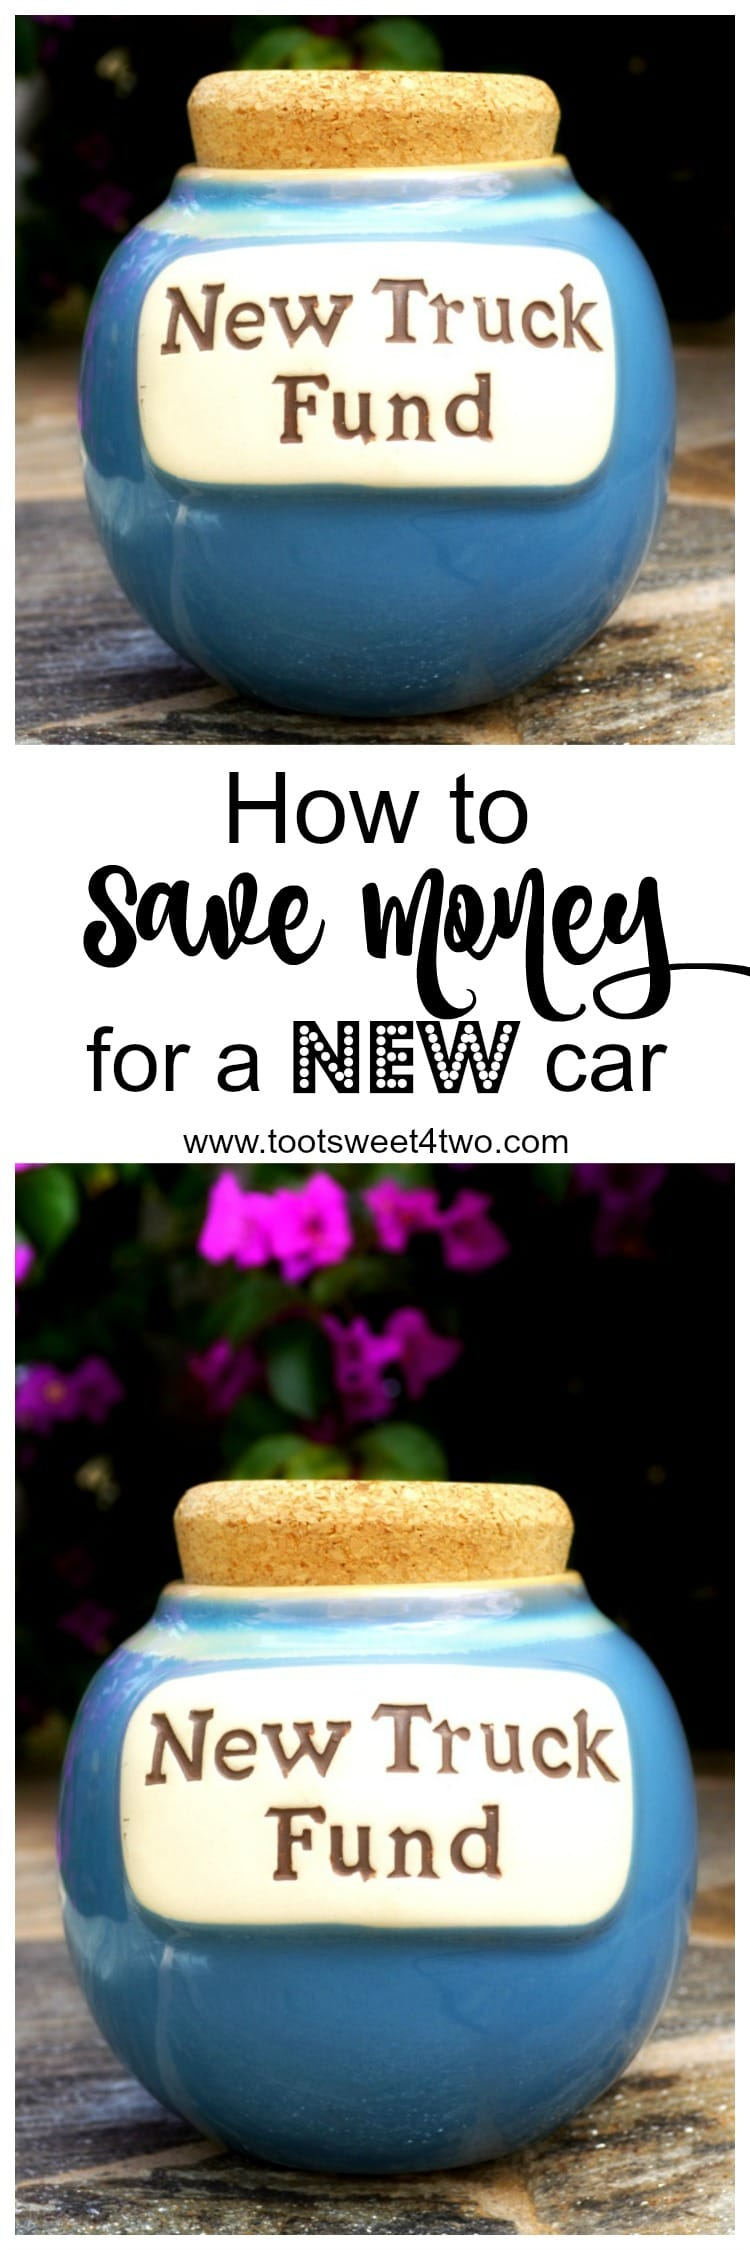 Saving for a new car can be a daunting challenge.  How to Save Money for a New Car offers several money saving strategies, simple tips, clever ideas, unexpected suggestions and creative solutions for saving money for a car. | www.tootsweet4two.com